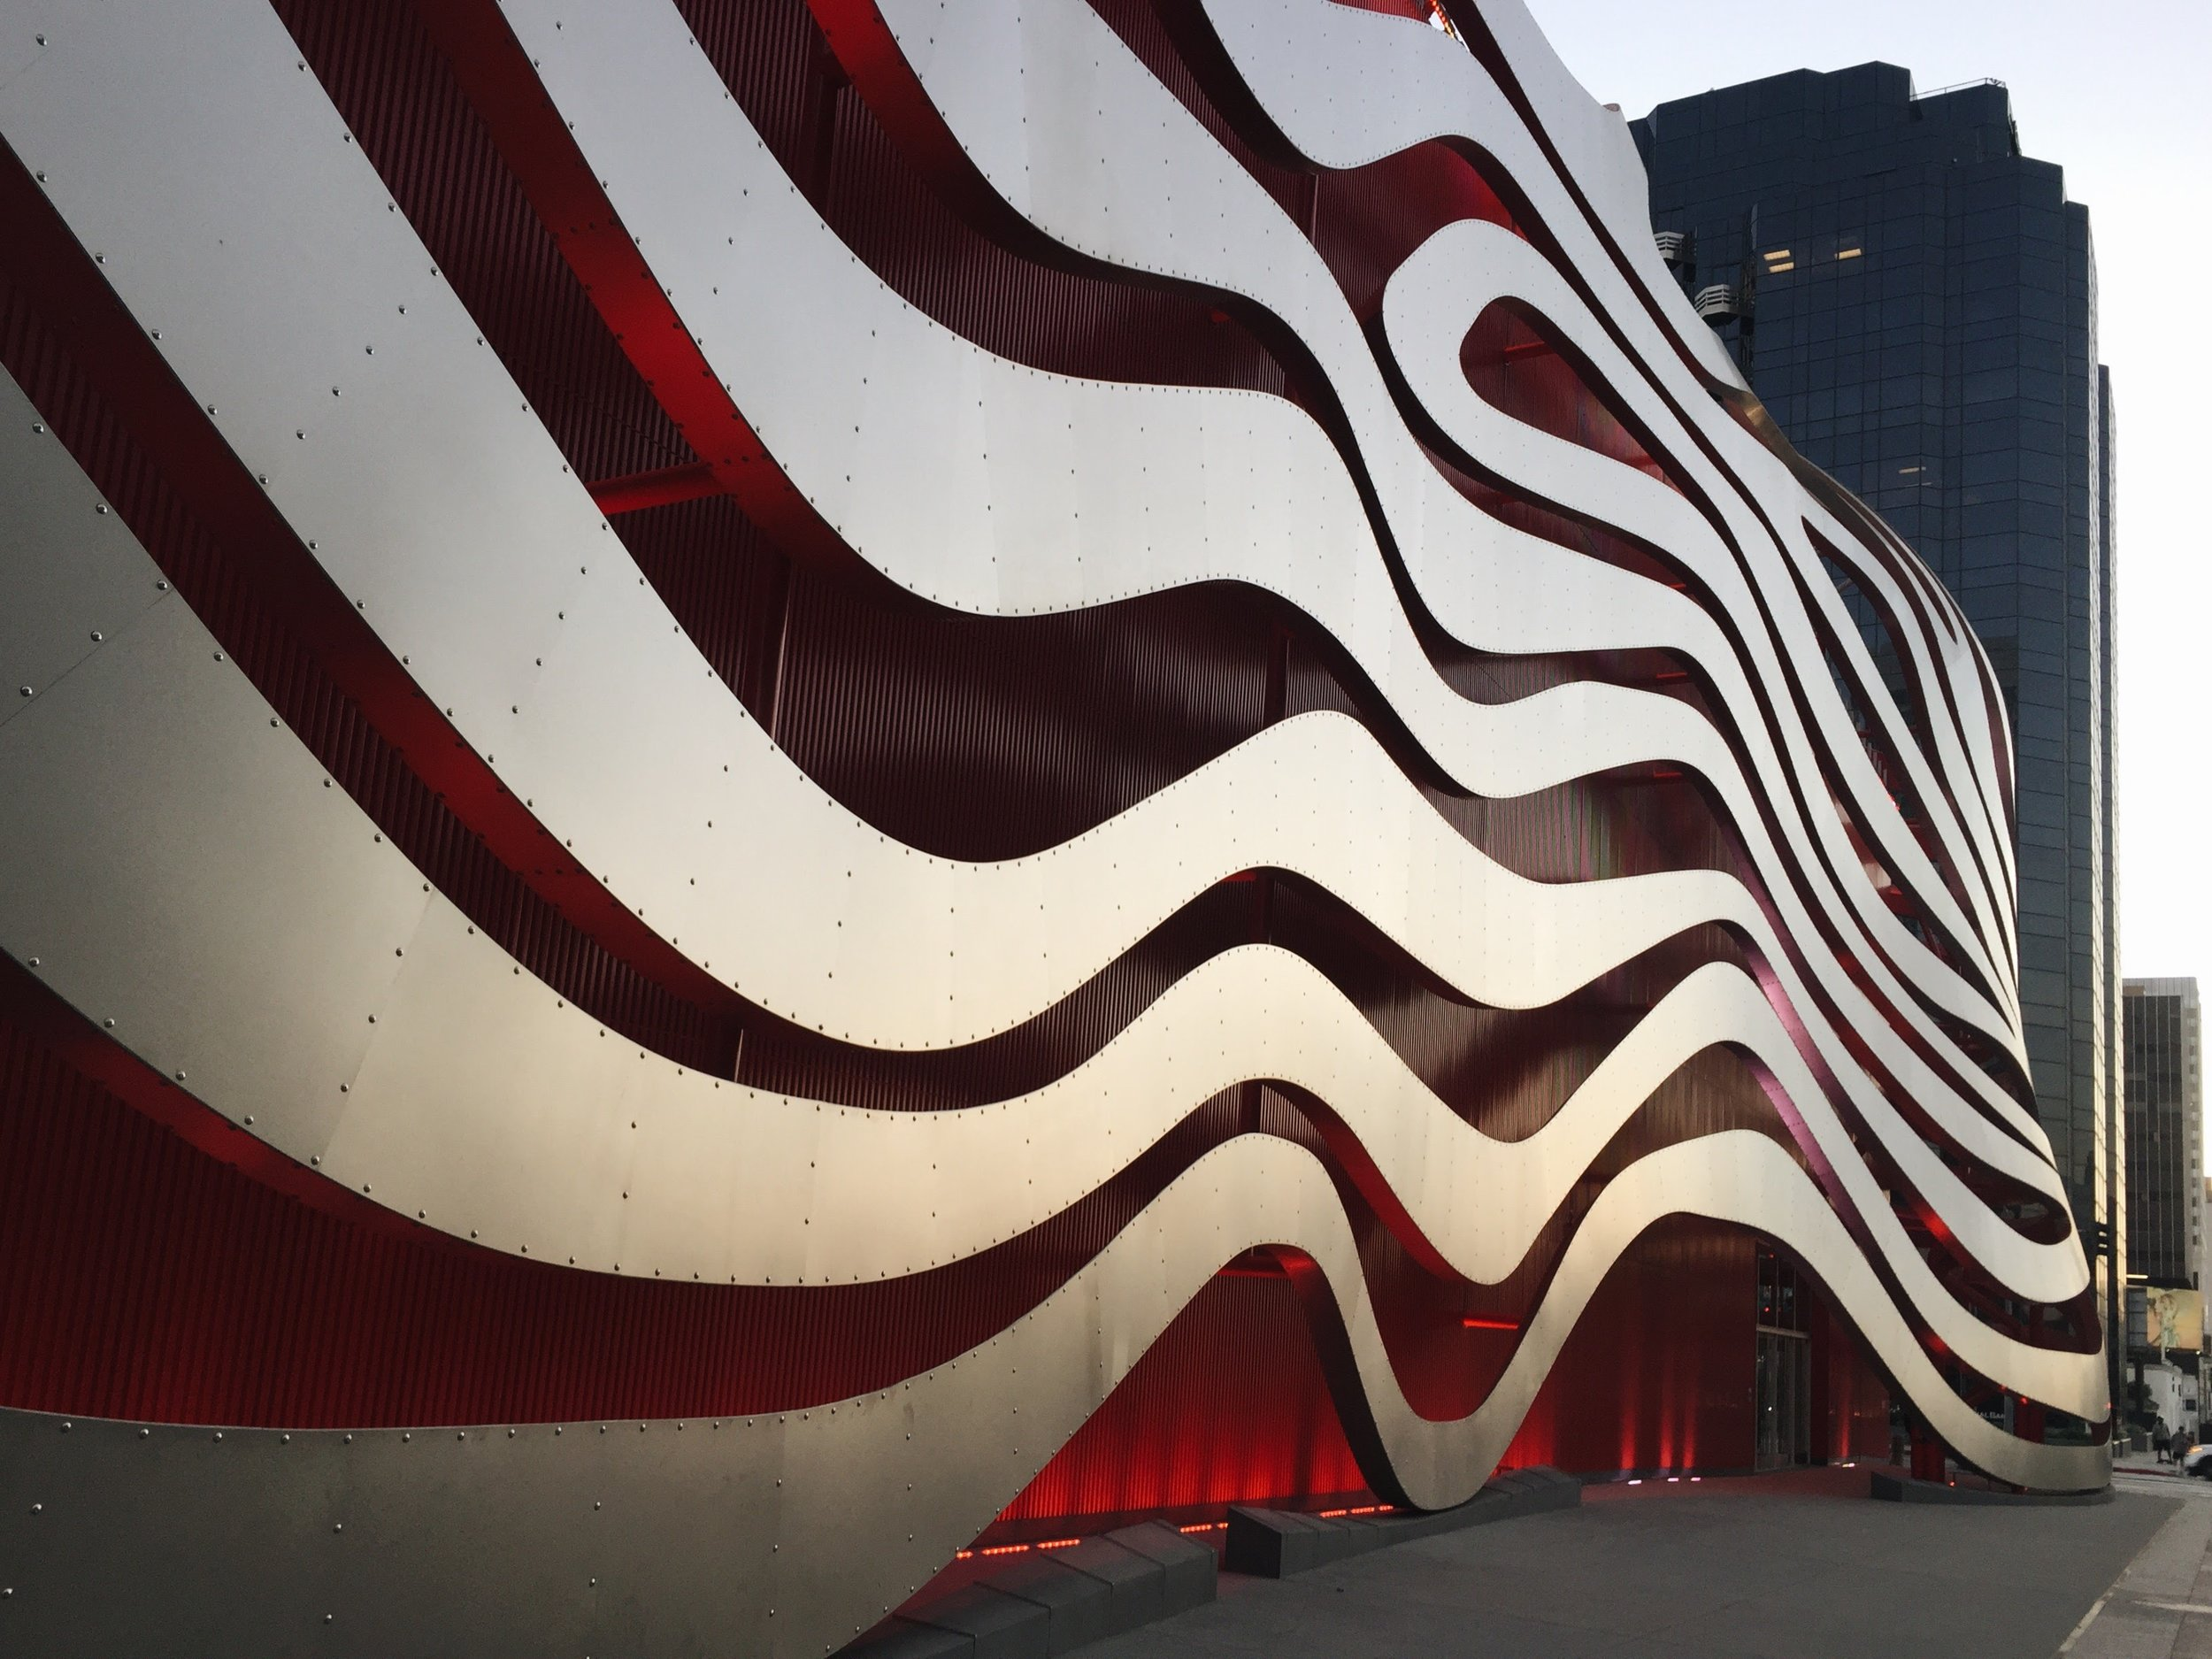 Petersen Automotive Museum by Kohn Pedersen Fox